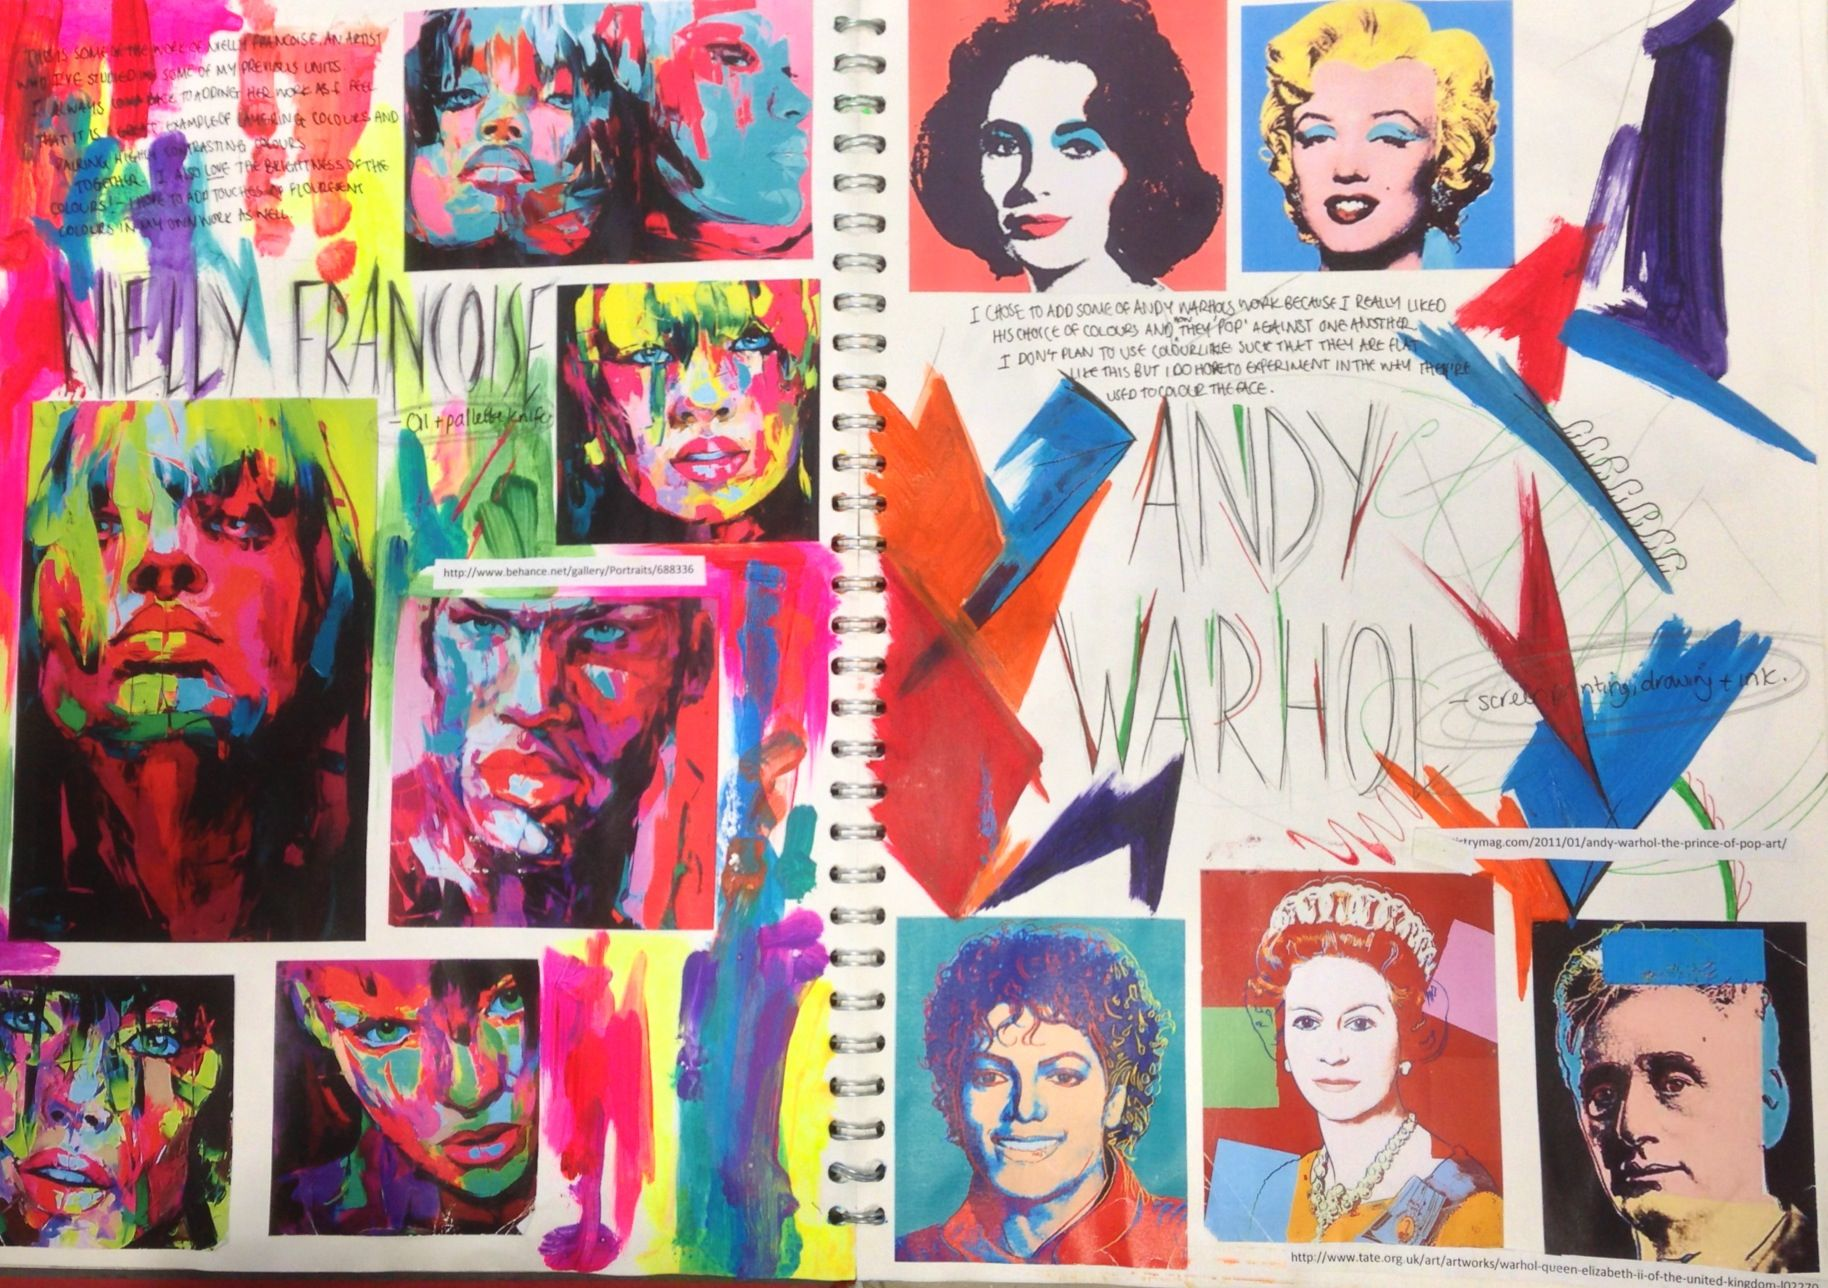 warhol and icons essay Term paper warehouse has free essays, term papers, and book reports for students on almost every research topic.